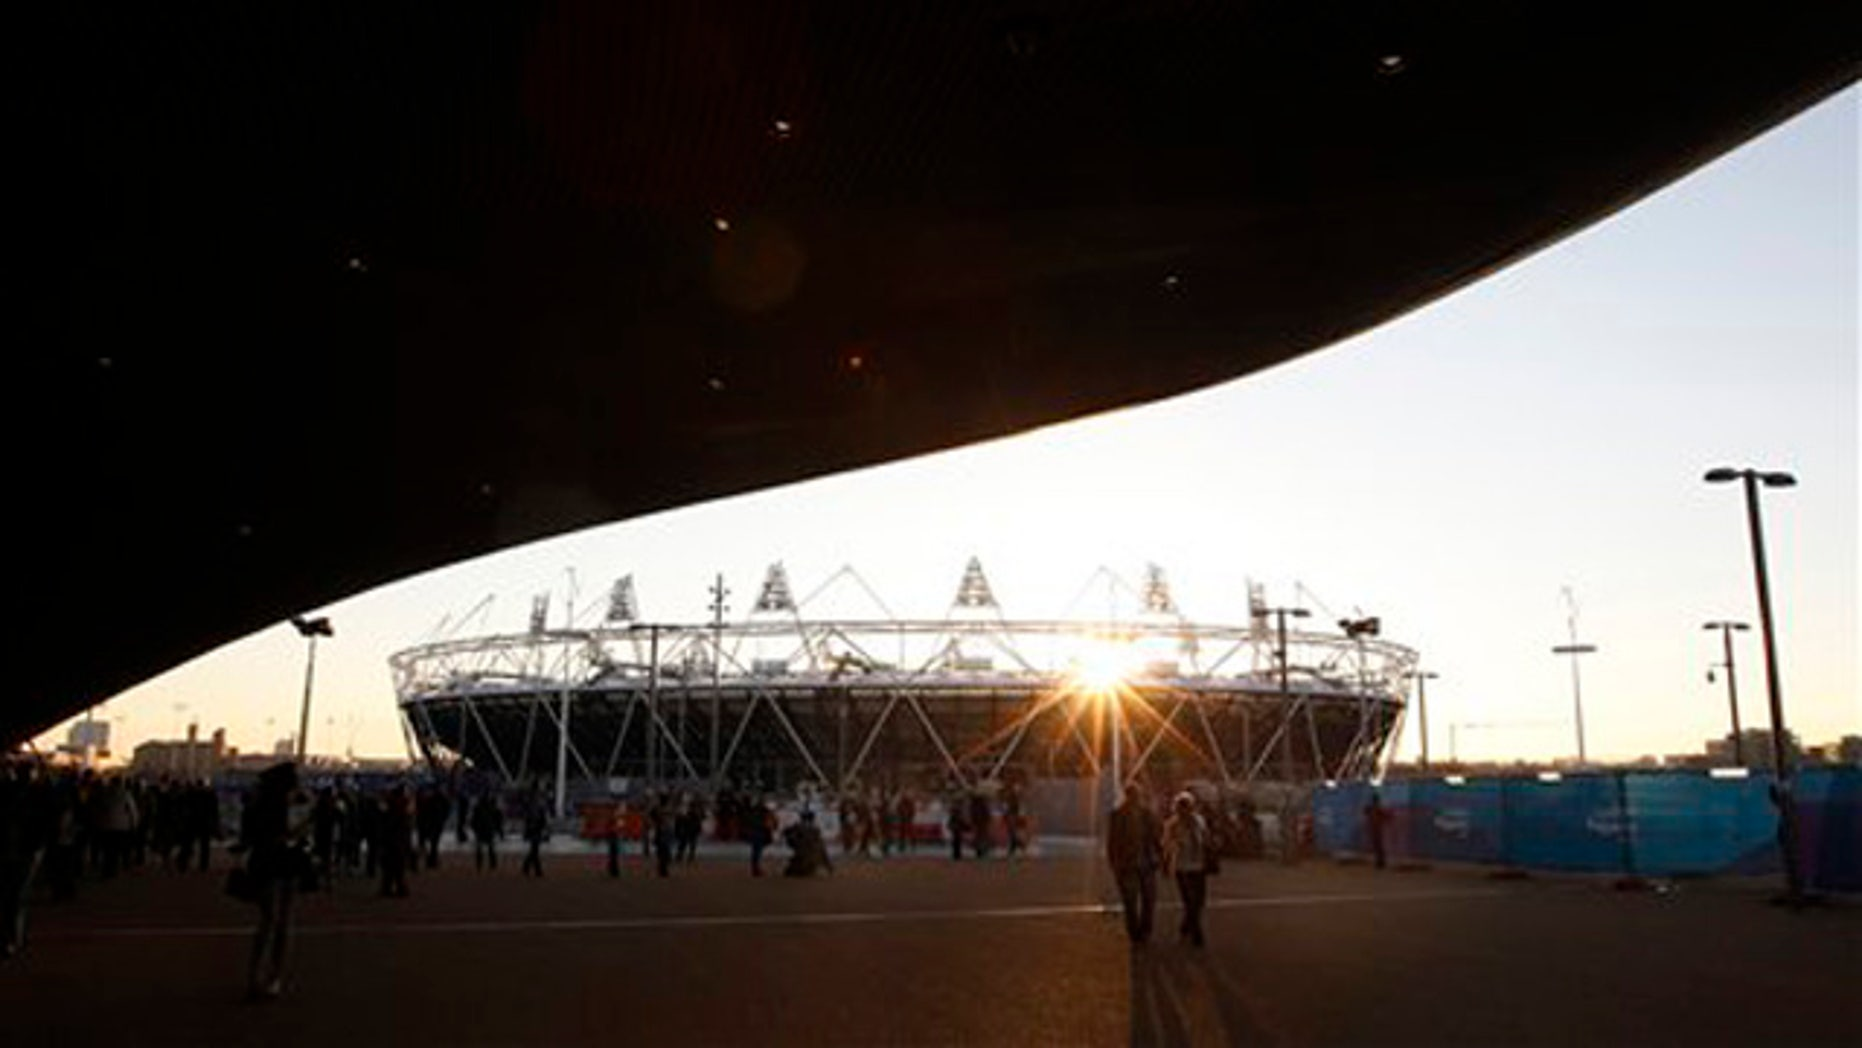 Feb. 23, 2012: The London 2012 Olympic Stadium is seen at about sunset at the Olympic Park in London.